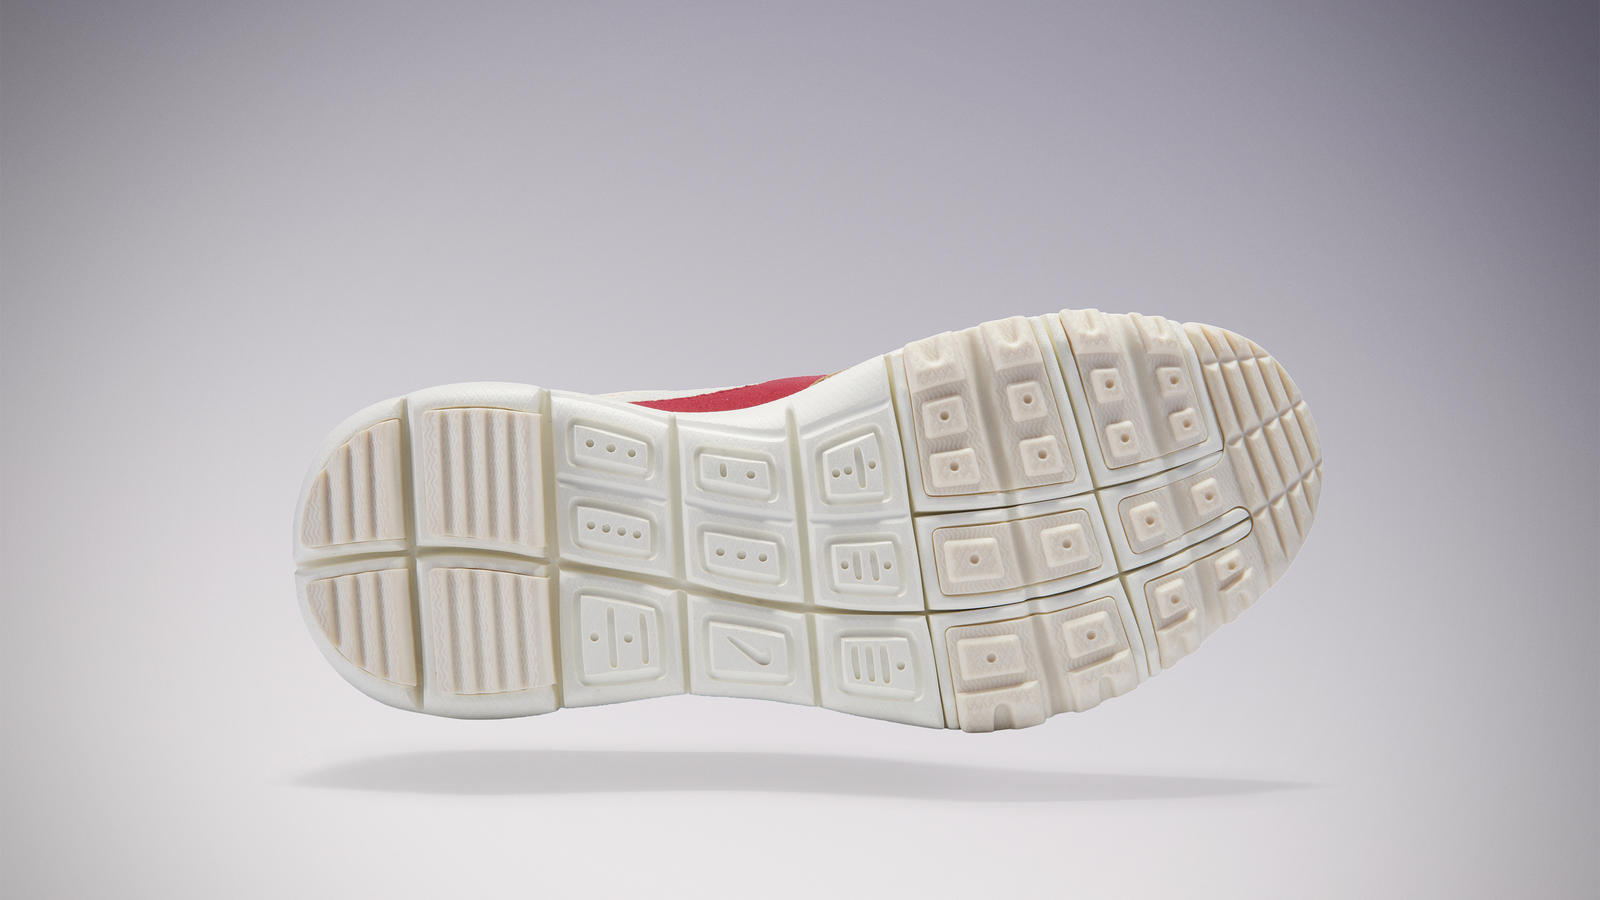 cbf2acce738905 Nike and Tom Sachs Introduce the NikeCraft Mars Yard 2.0 - Nike News